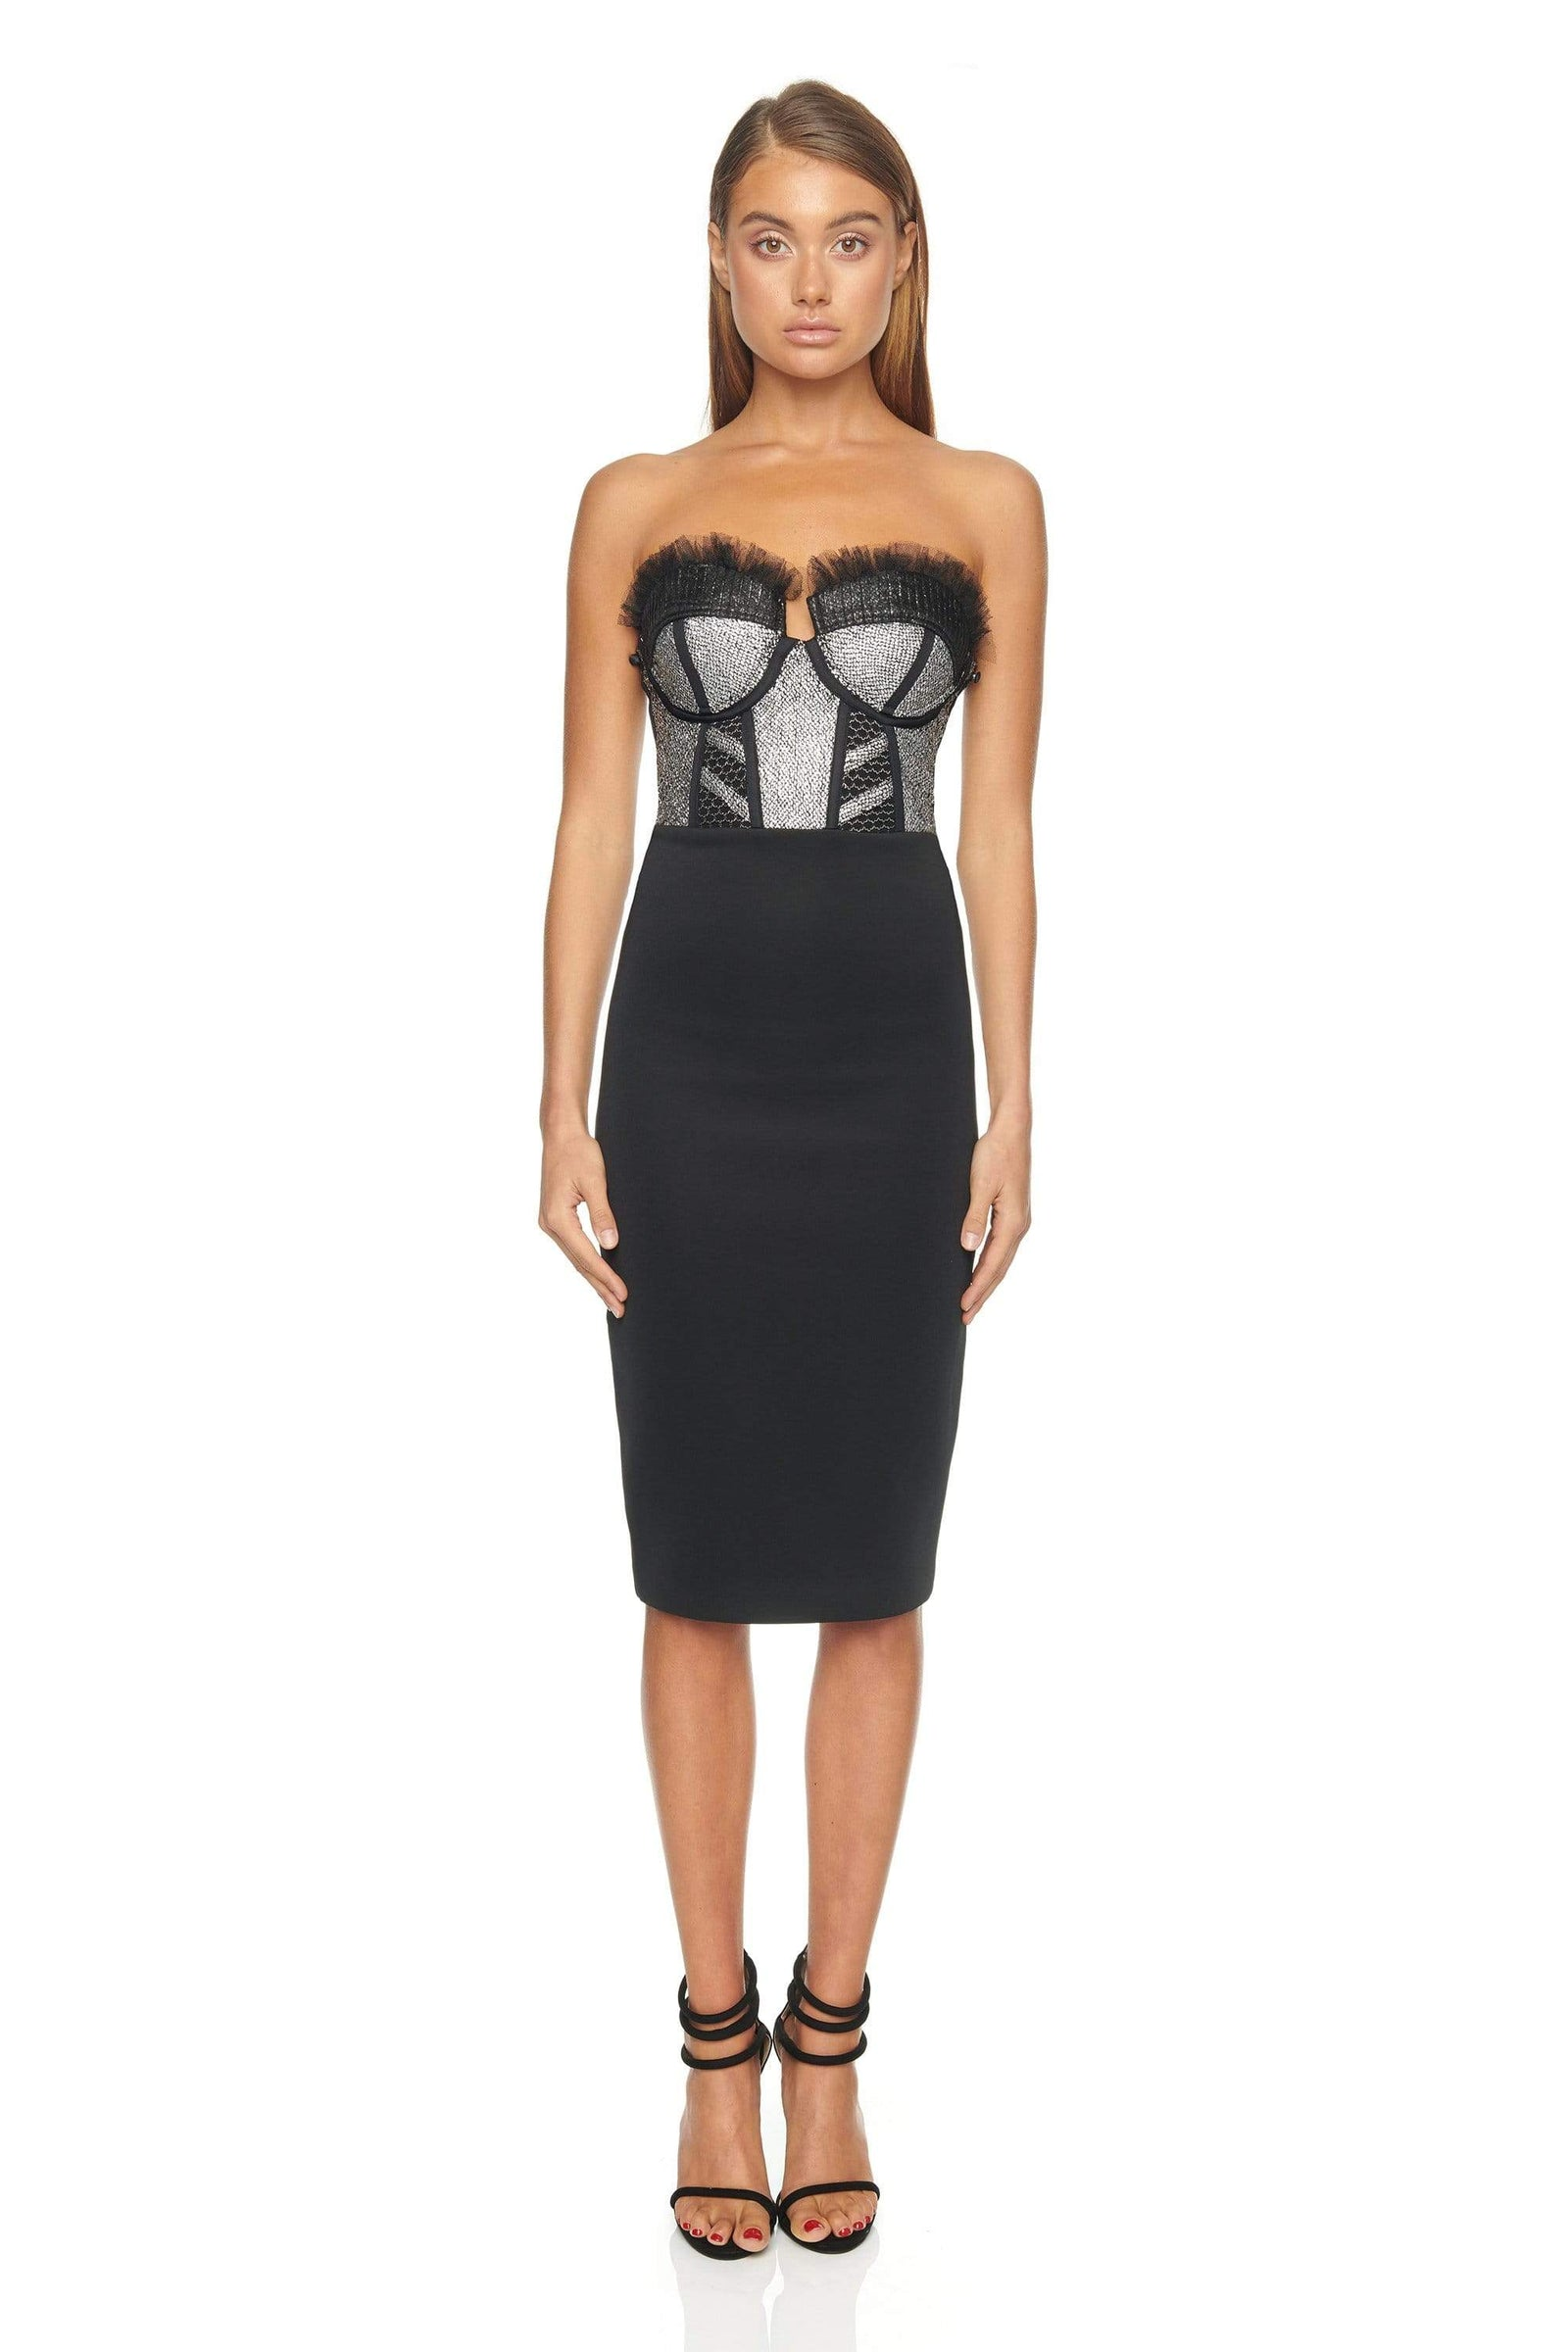 CELINE DRESS WITH DETACHABLE SLEEVES - ELIYA THE LABEL